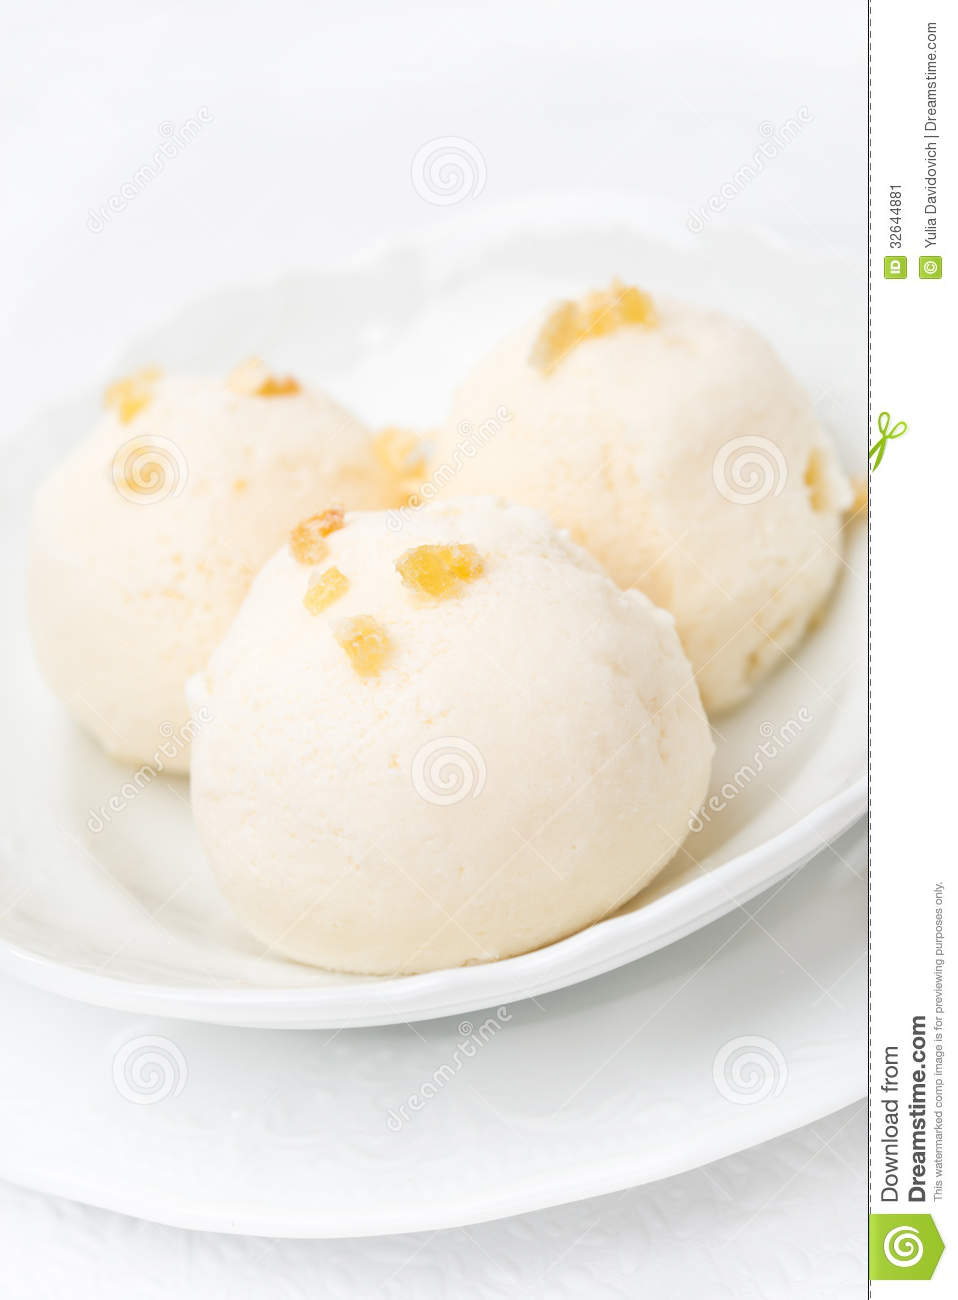 Ginger Ice Cream With Melted Milk, Close-up Stock Image - Image ...